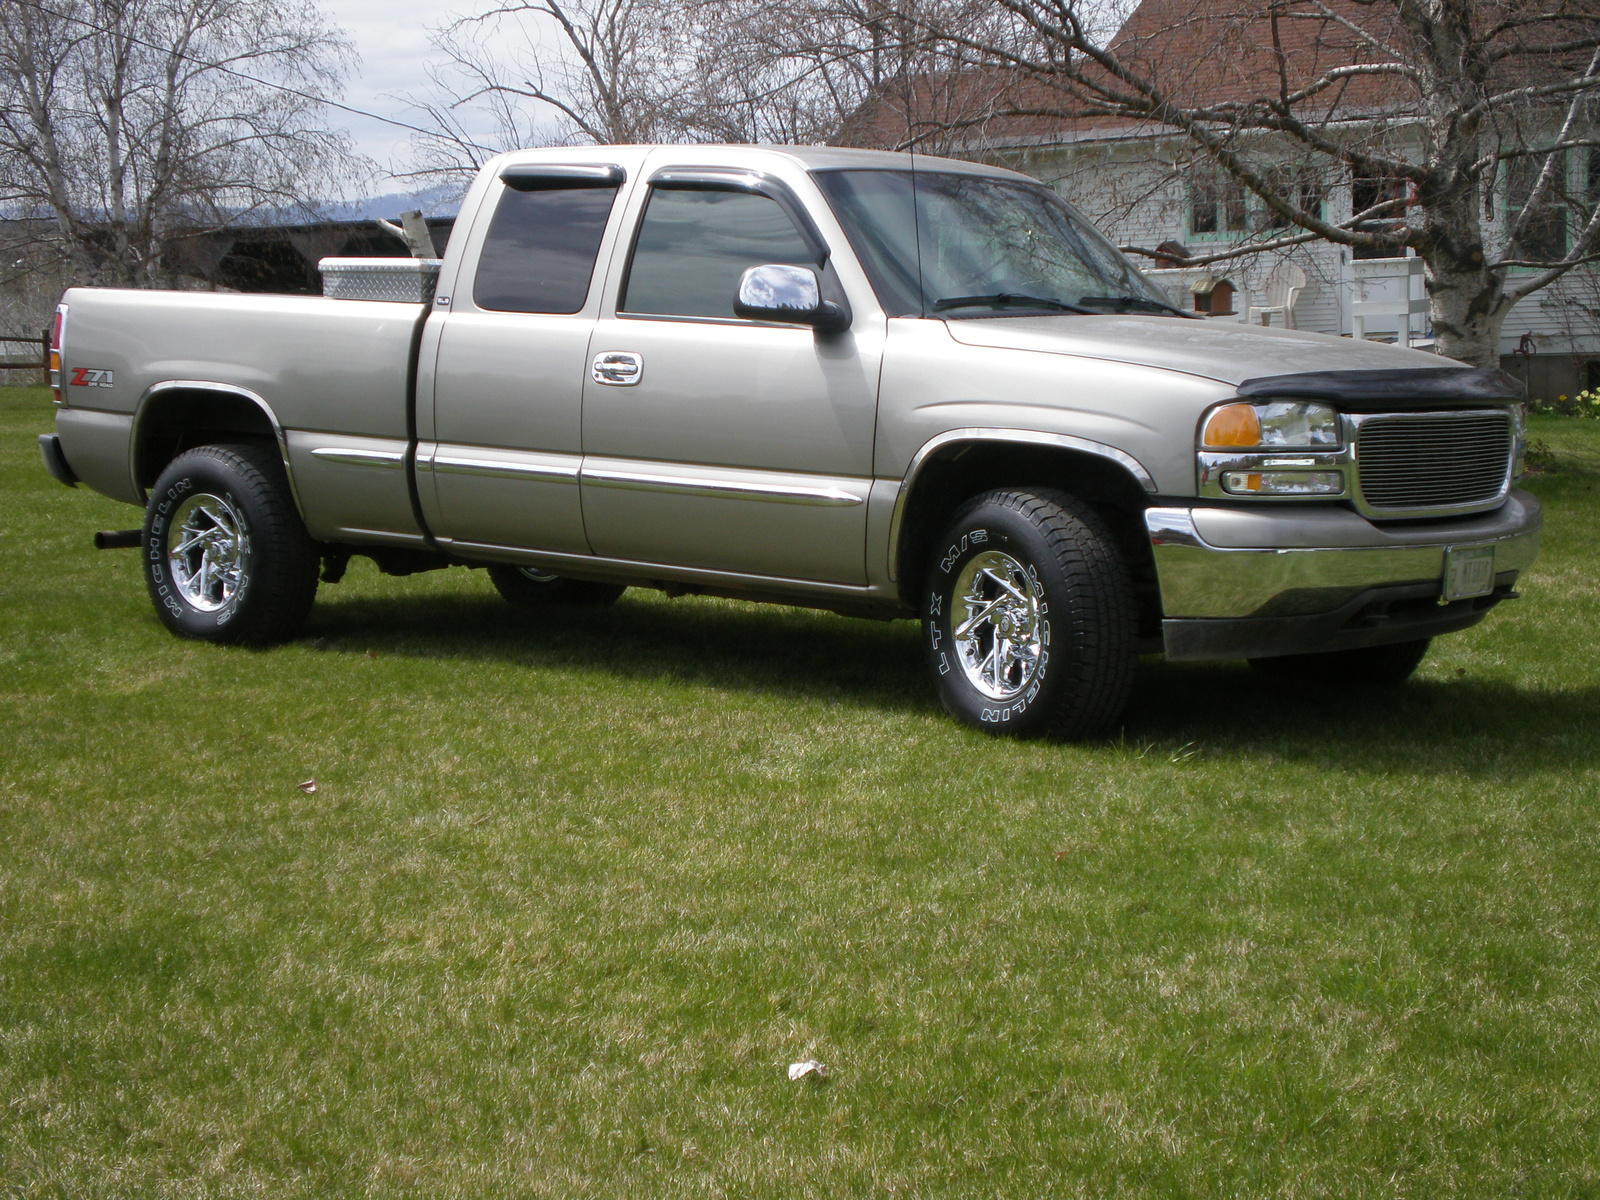 2002 gmc sierra 2500 information and photos zombiedrive. Black Bedroom Furniture Sets. Home Design Ideas